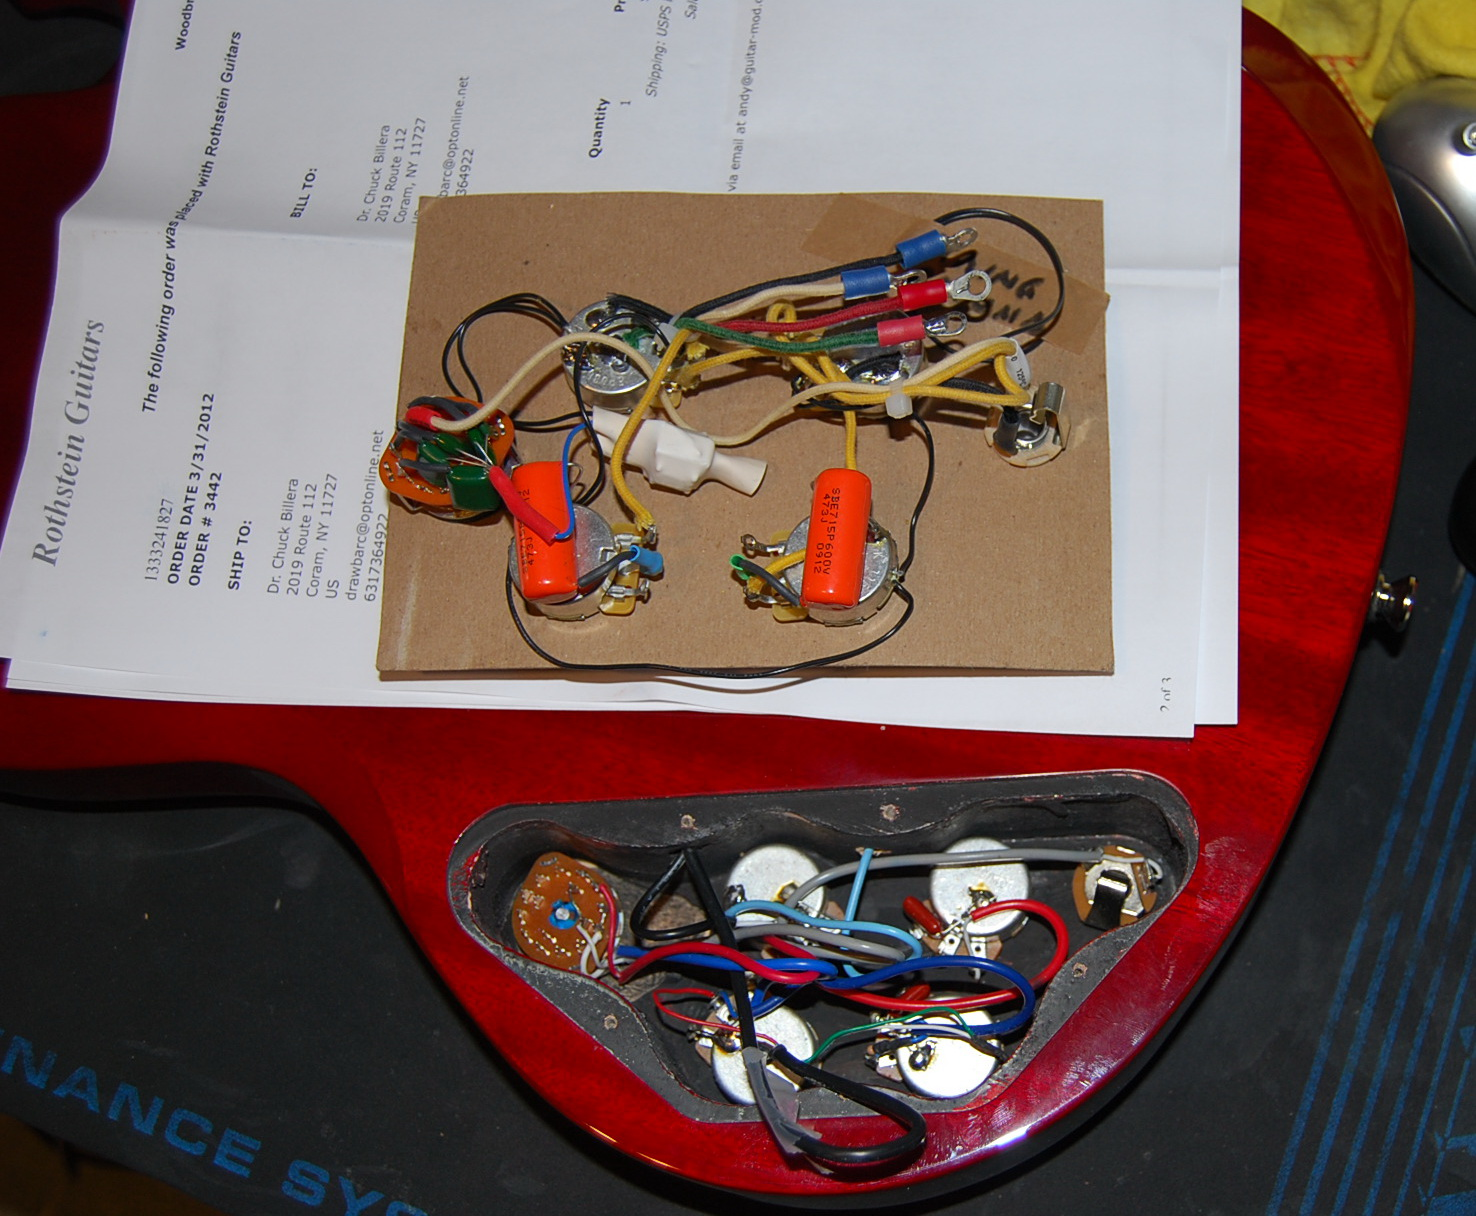 3 easy mods to make your epiphone eb3 bass great part 1 epiphone eb3 wiring